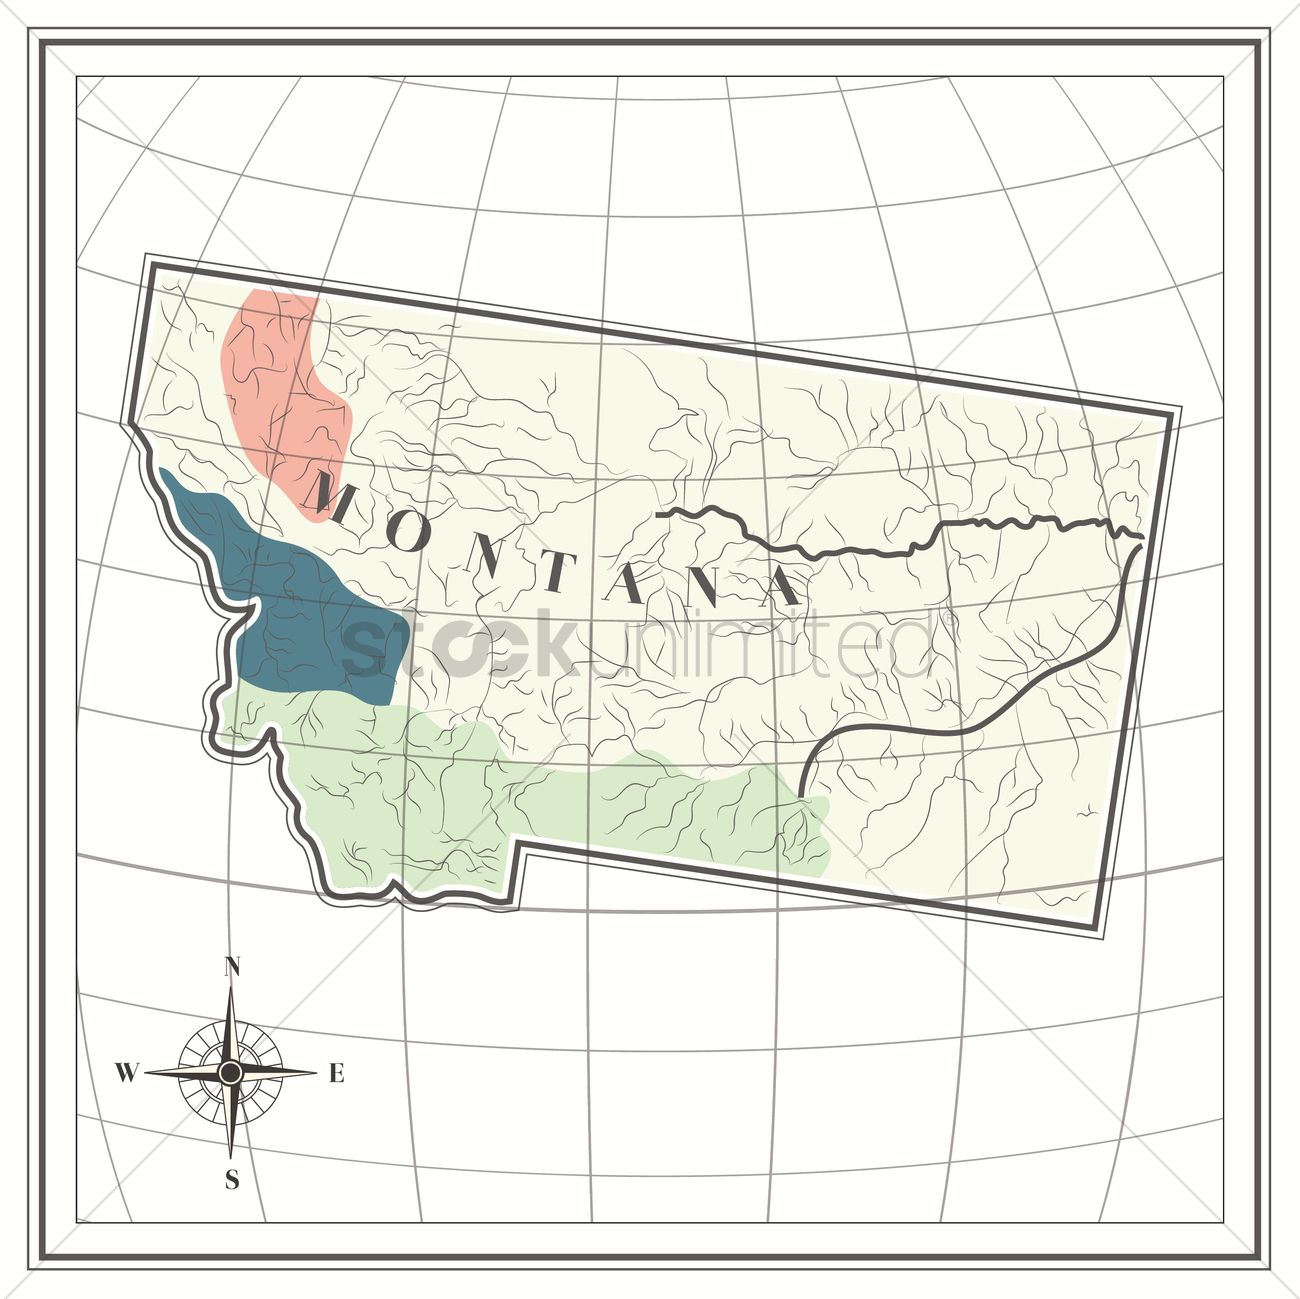 Map of montana state Vector Image - 1535355 | StockUnlimited